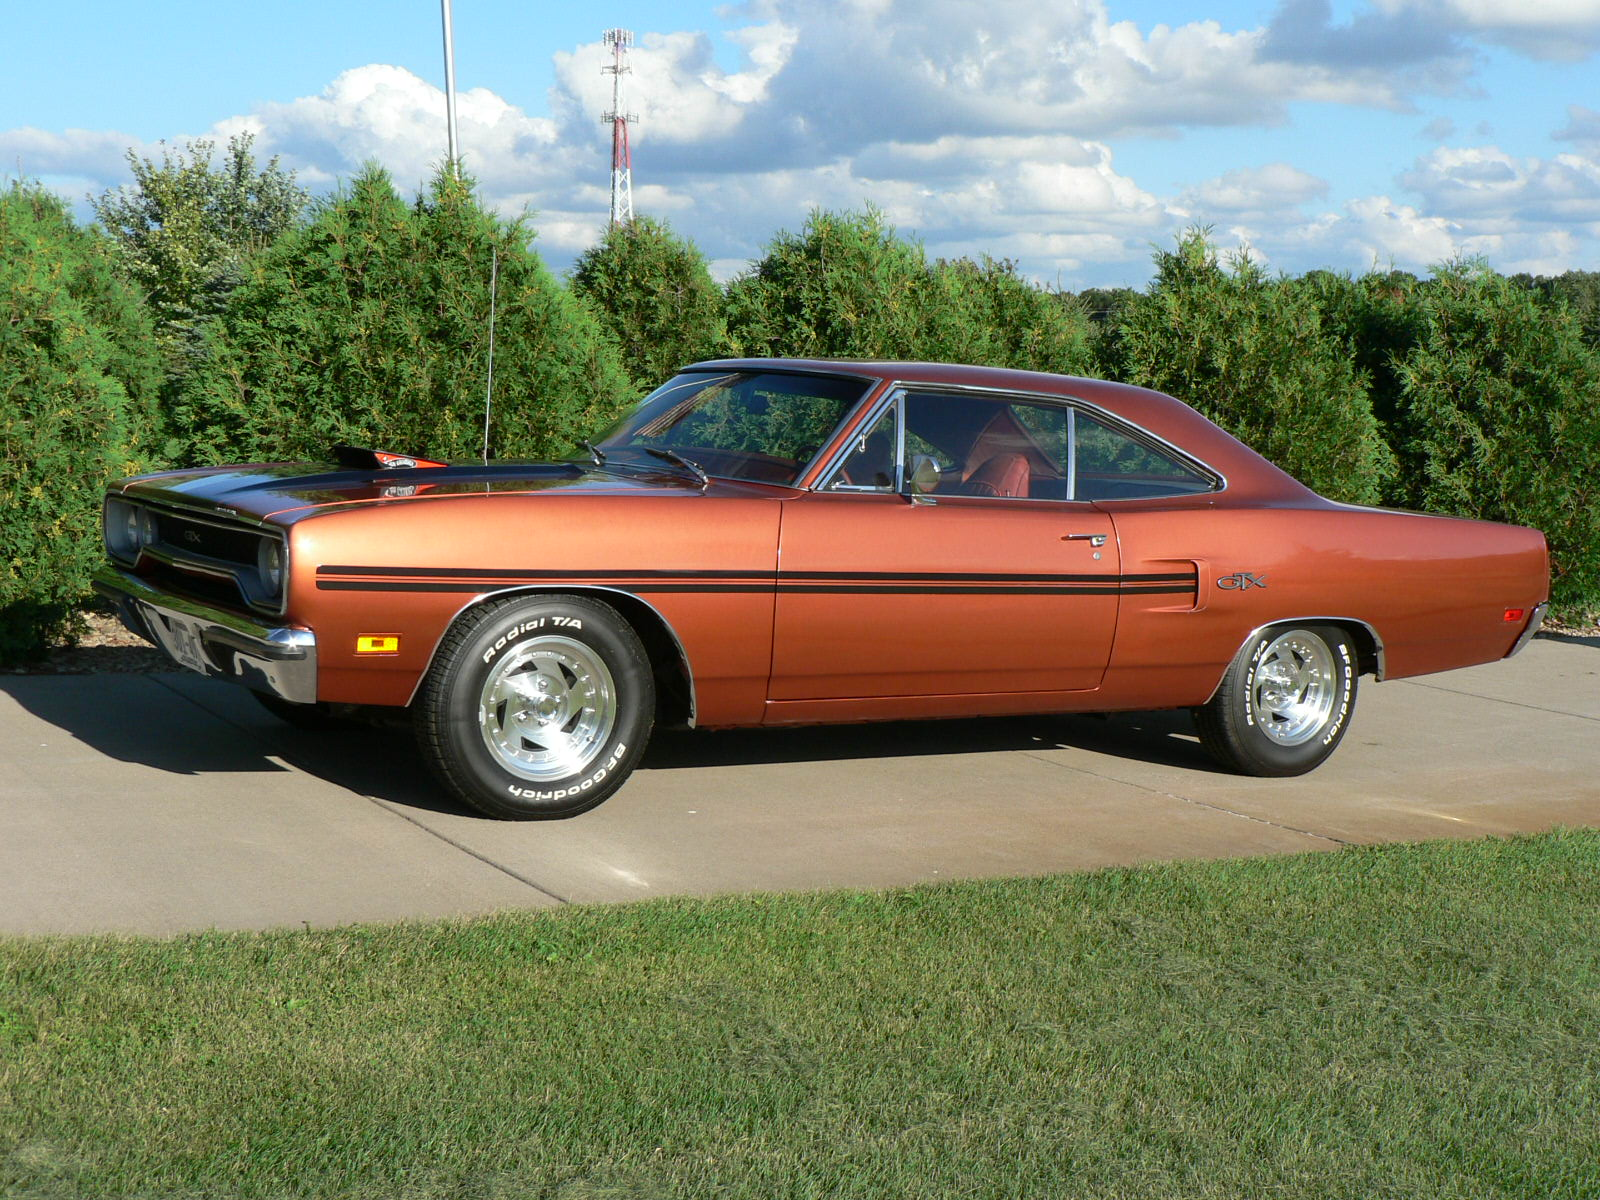 http://static.cargurus.com/images/site/2011/05/30/19/48/1970_plymouth_gtx-pic-5475691739652810171.jpeg